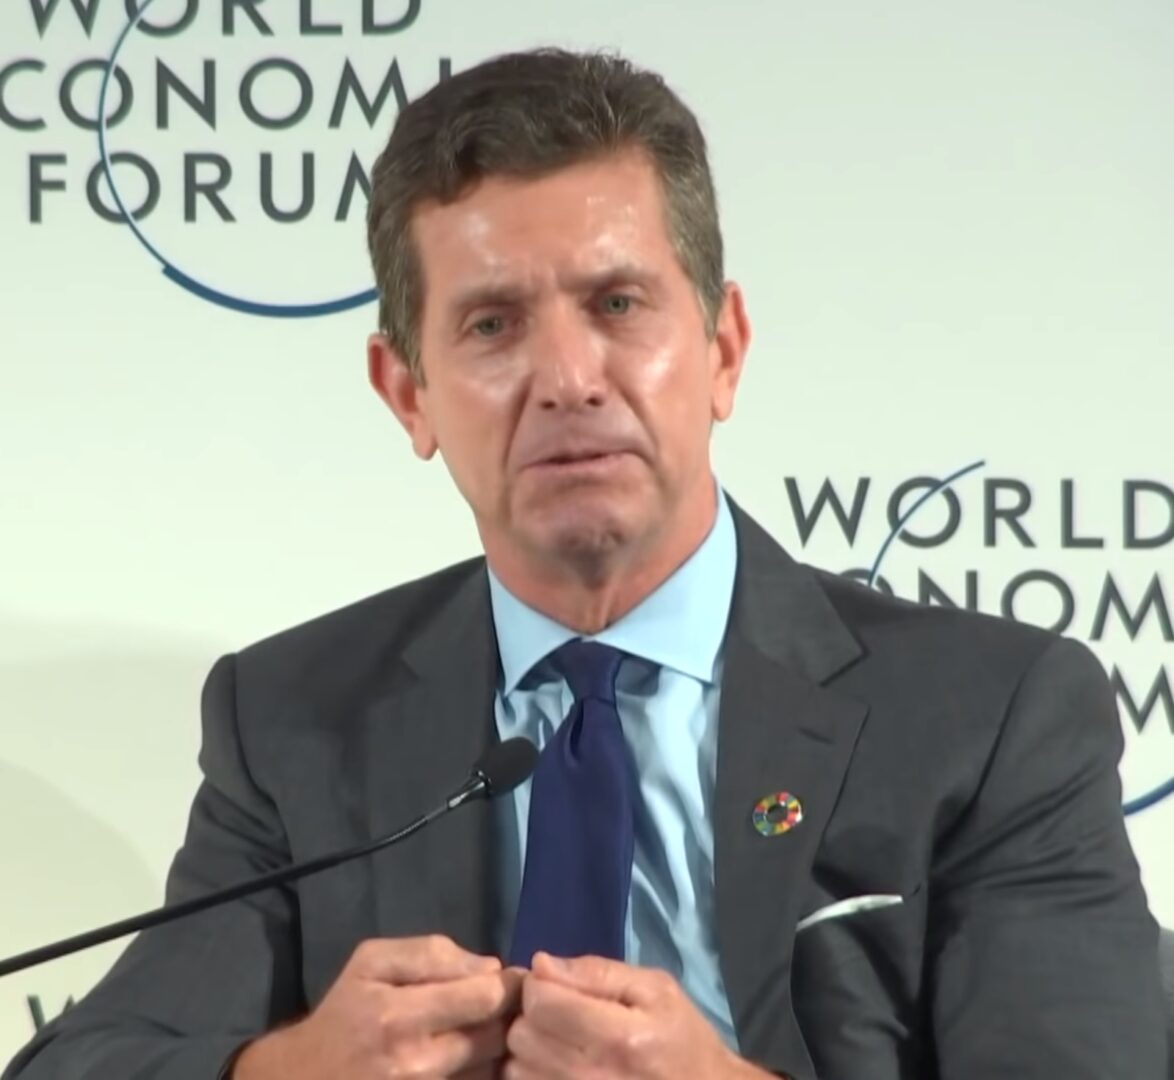 Johnson & Johnson Chairman and CEO Alex Gorsky